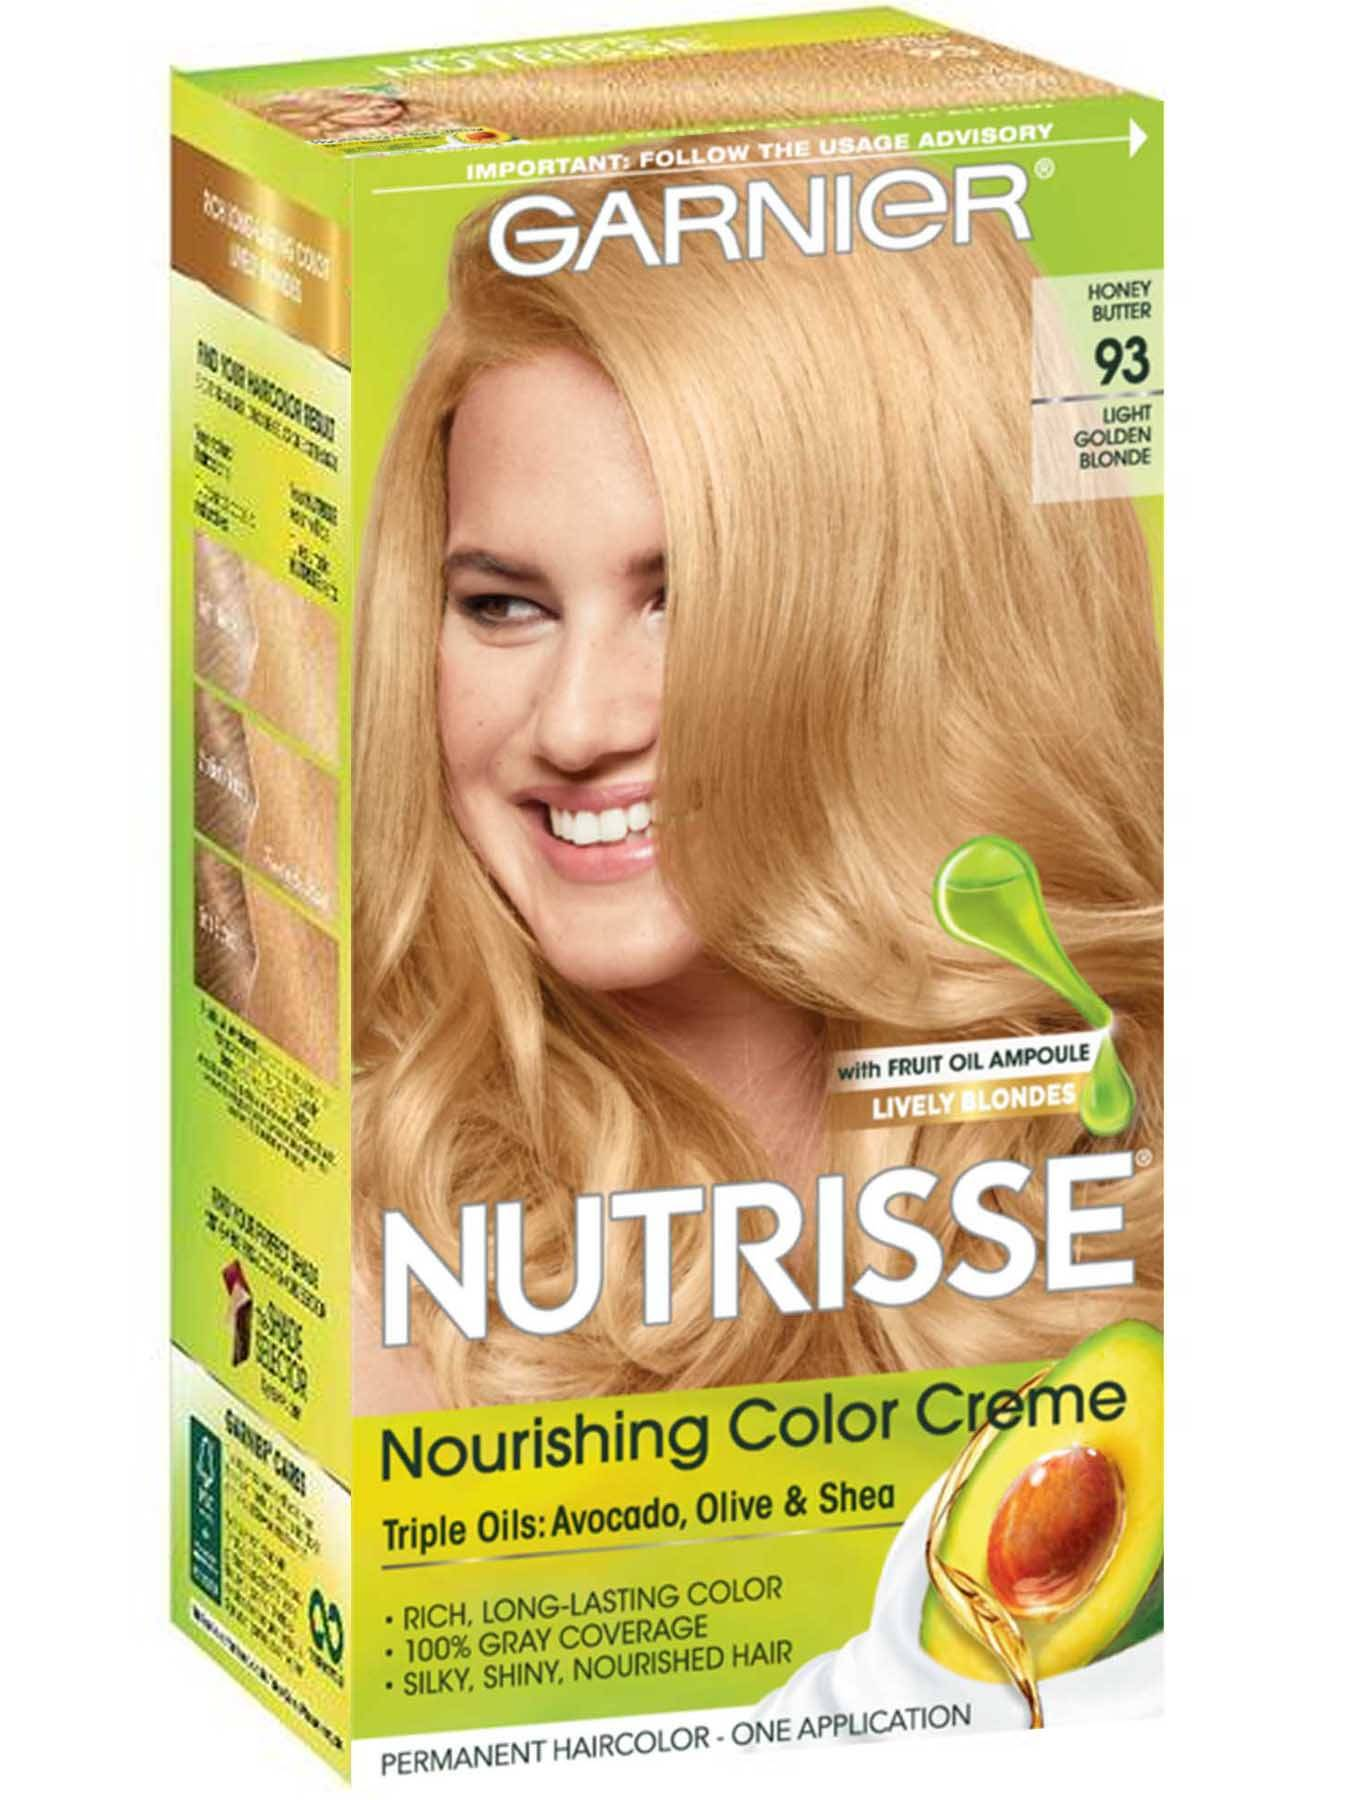 Nutrisse Nourishing Color Creme - Light Golden Blonde 93 - Garnier